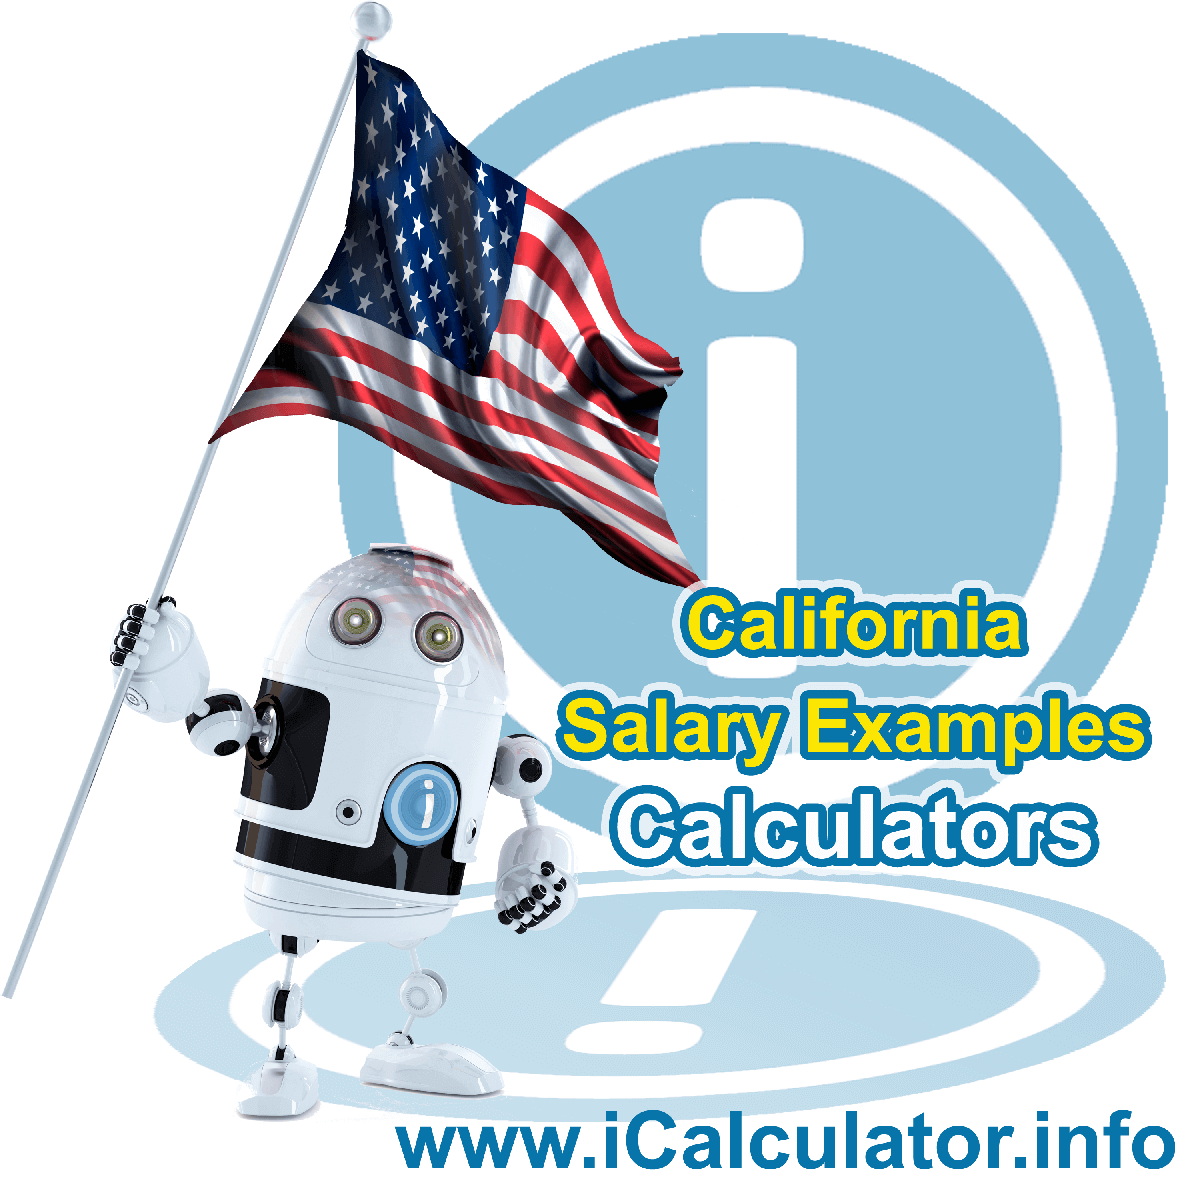 California Salary Example for $50.00 in 2020 | iCalculator | $50.00 salary example for employee and employer paying California State tincome taxes. Detailed salary after tax calculation including California State Tax, Federal State Tax, Medicare Deductions, Social Security, Capital Gains and other income tax and salary deductions complete with supporting California state tax tables